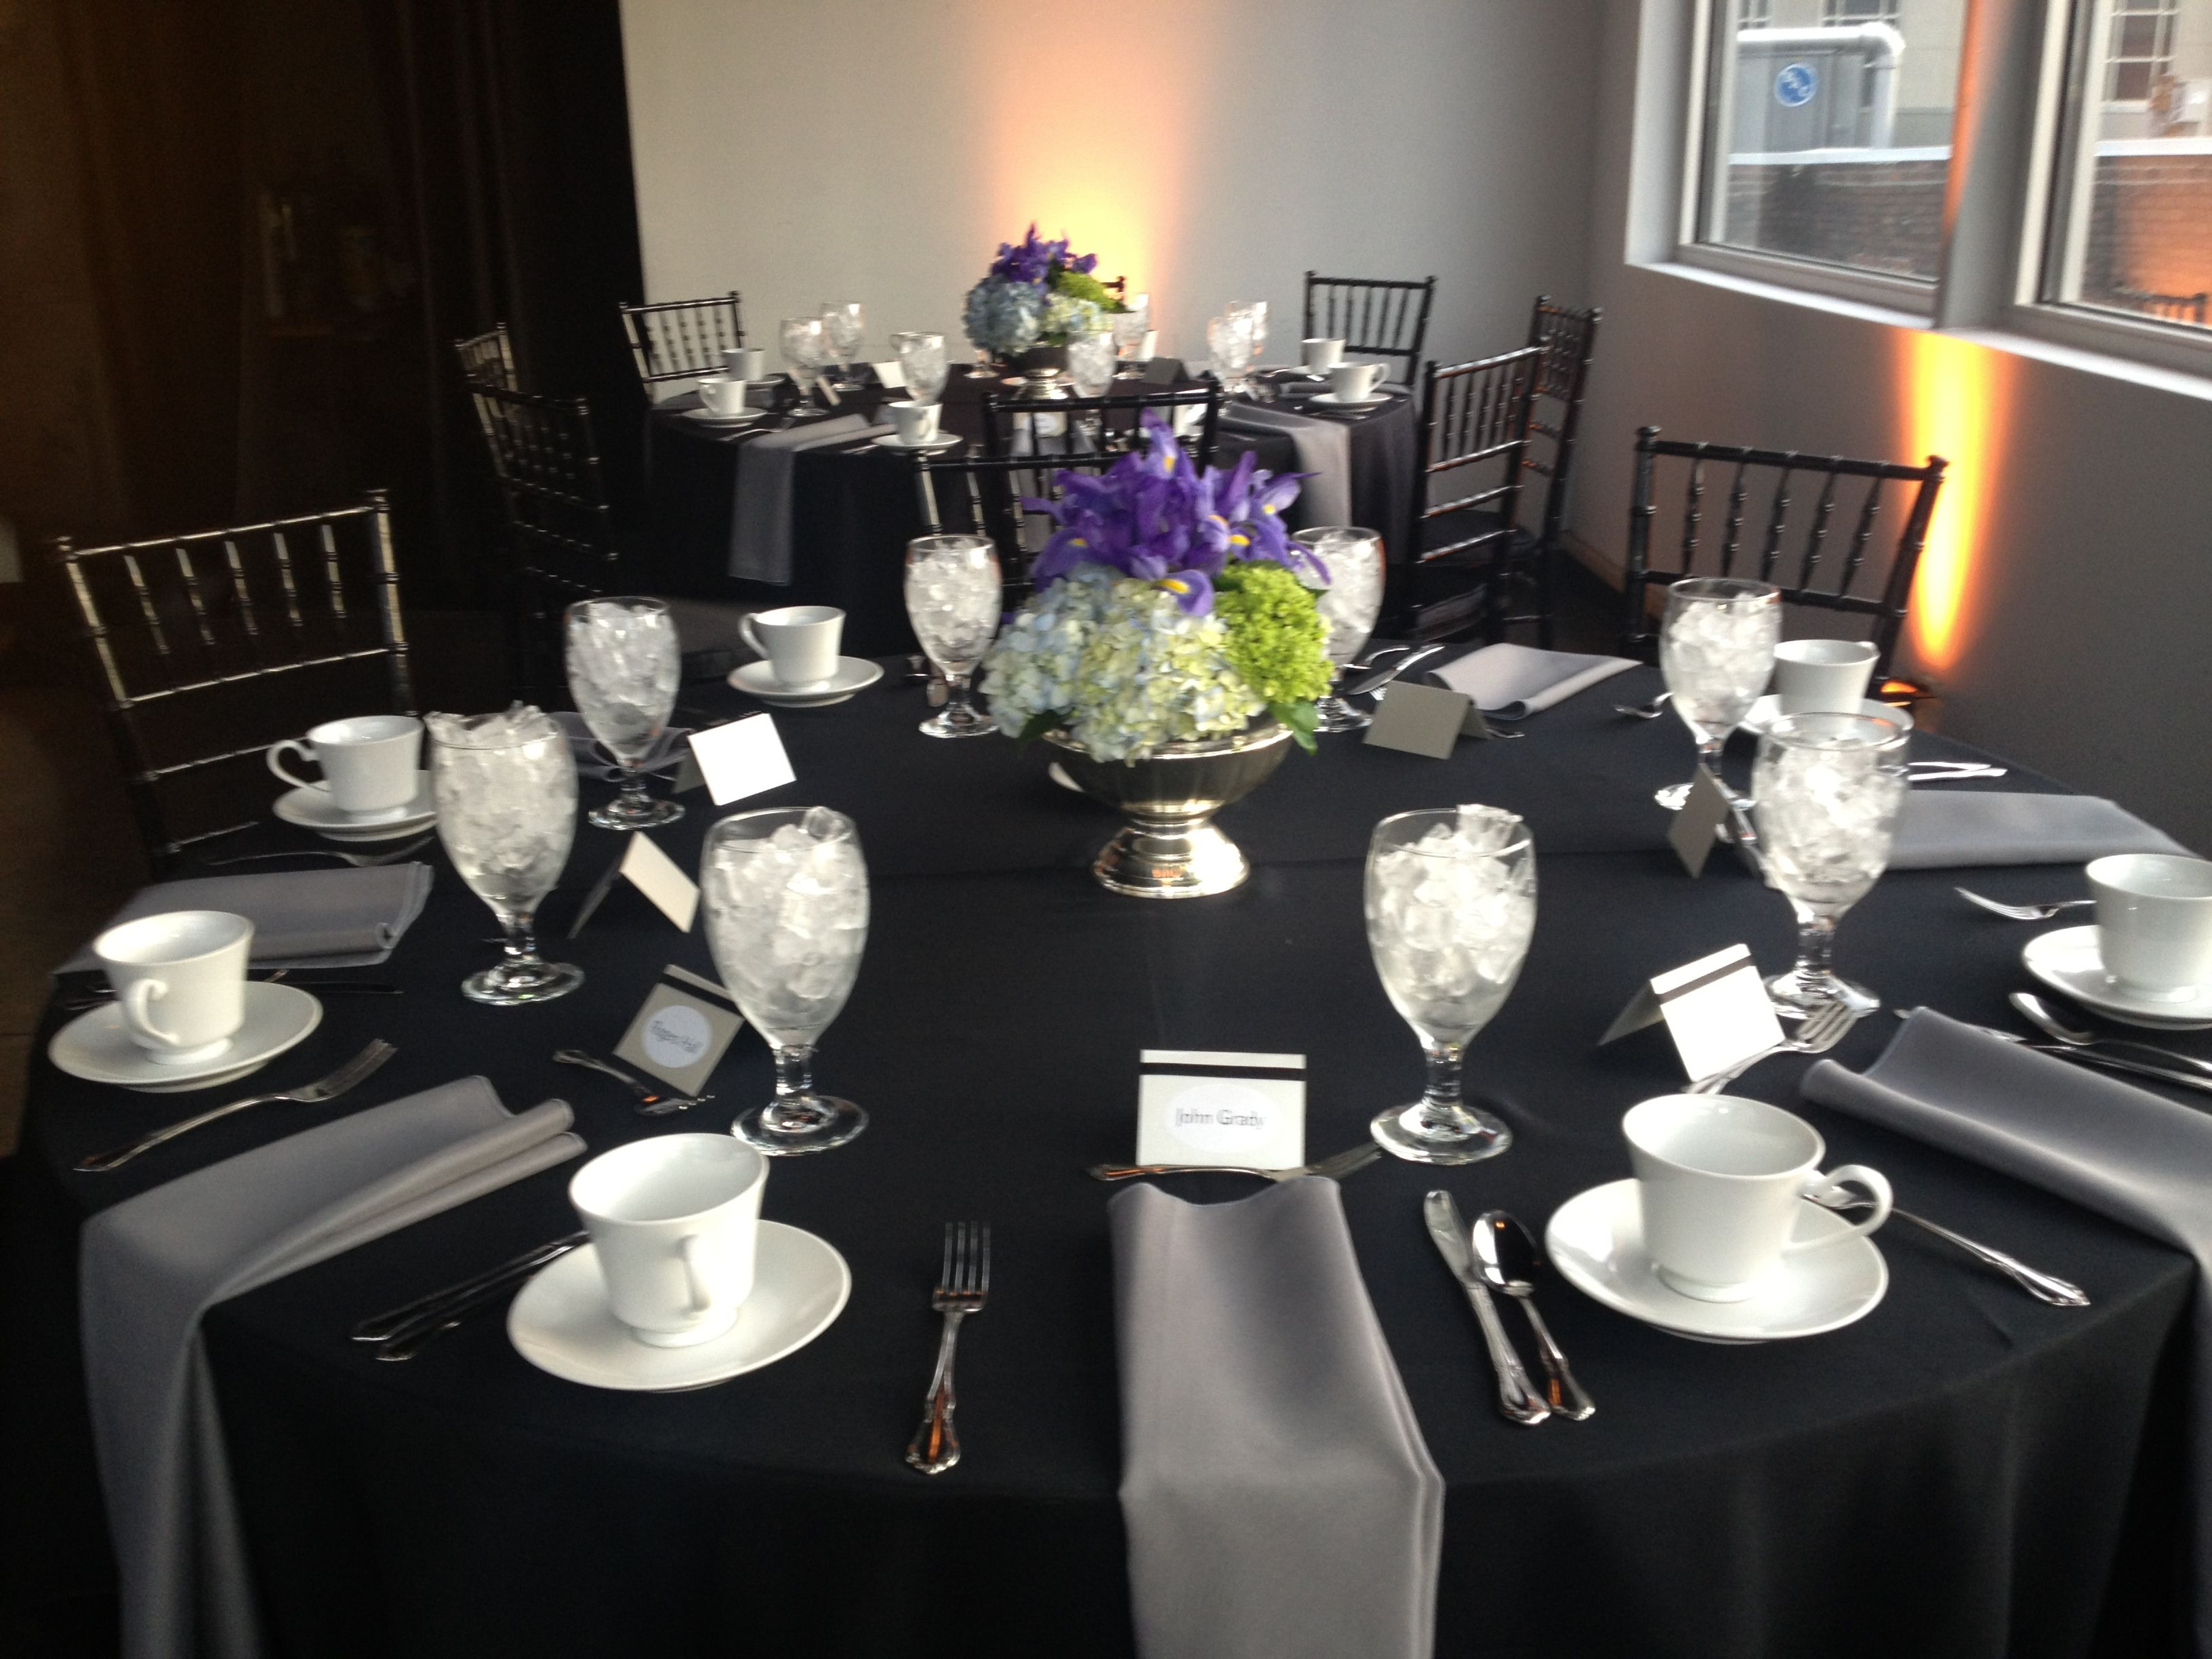 Restaurant table setting ideas - Table Setting For Corporate Event